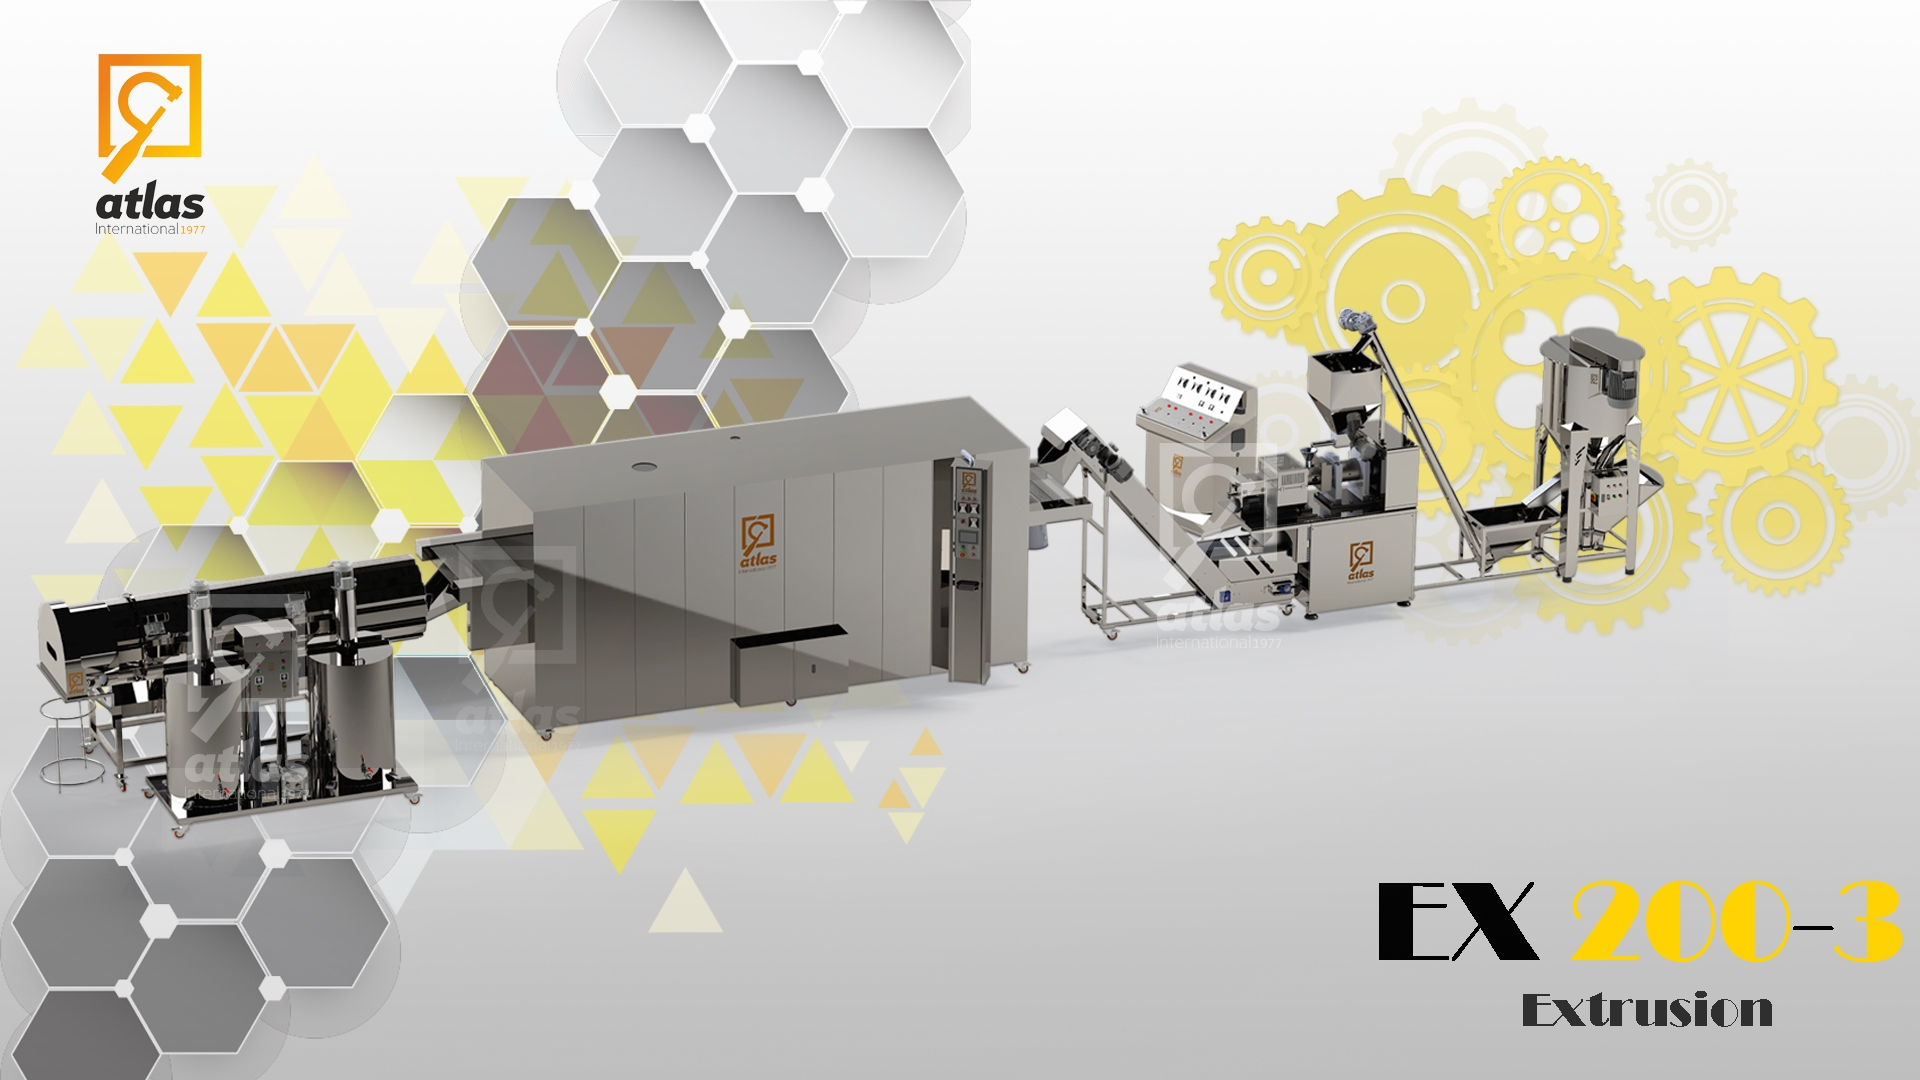 EX200-3  - Corn snacks production line with Advanced Oven